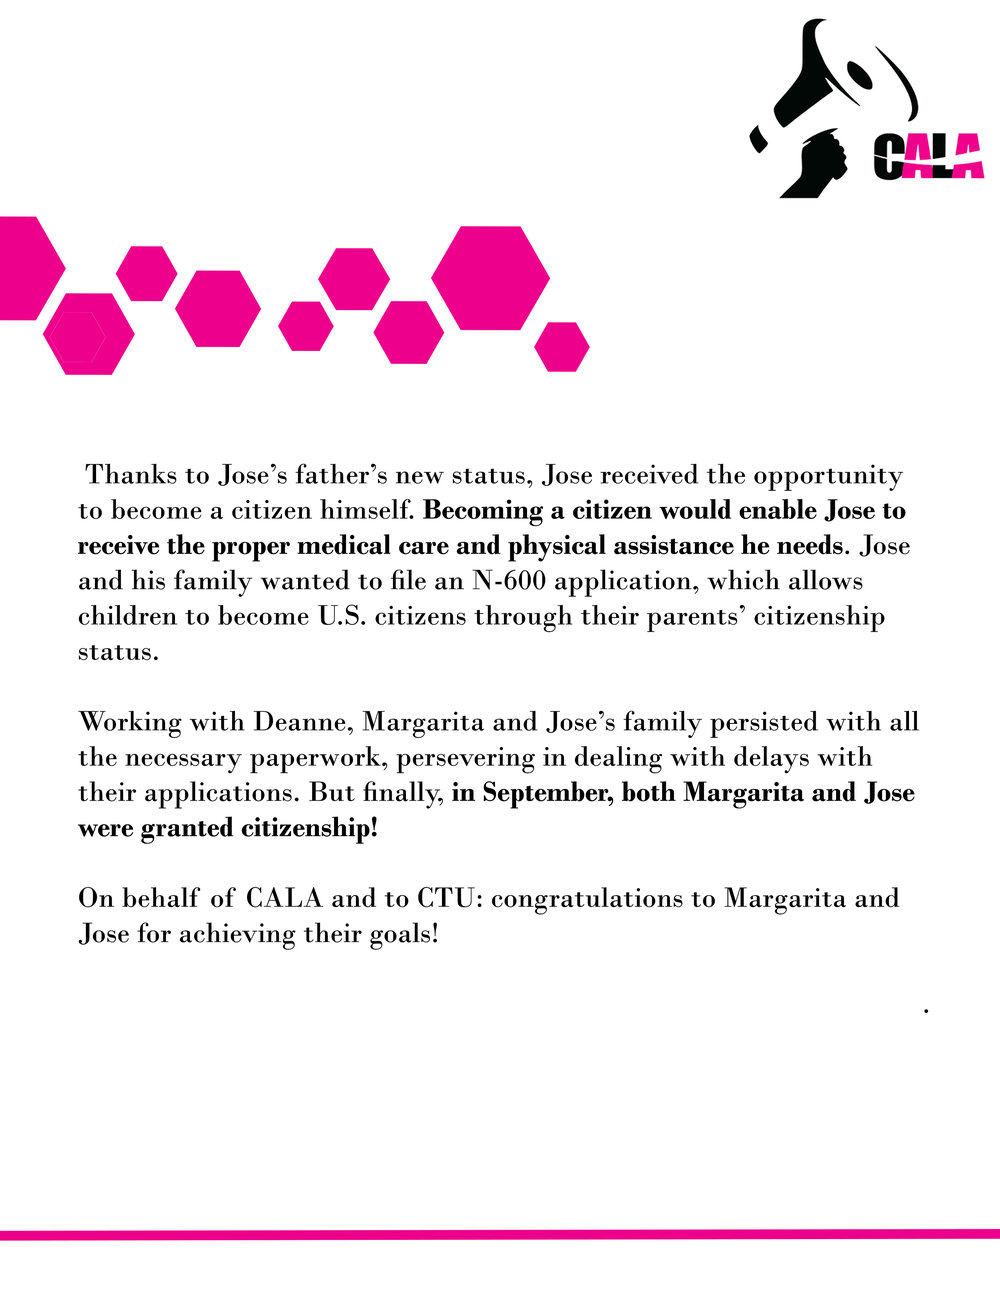 Margarita and Jose success story pg 2.jpg